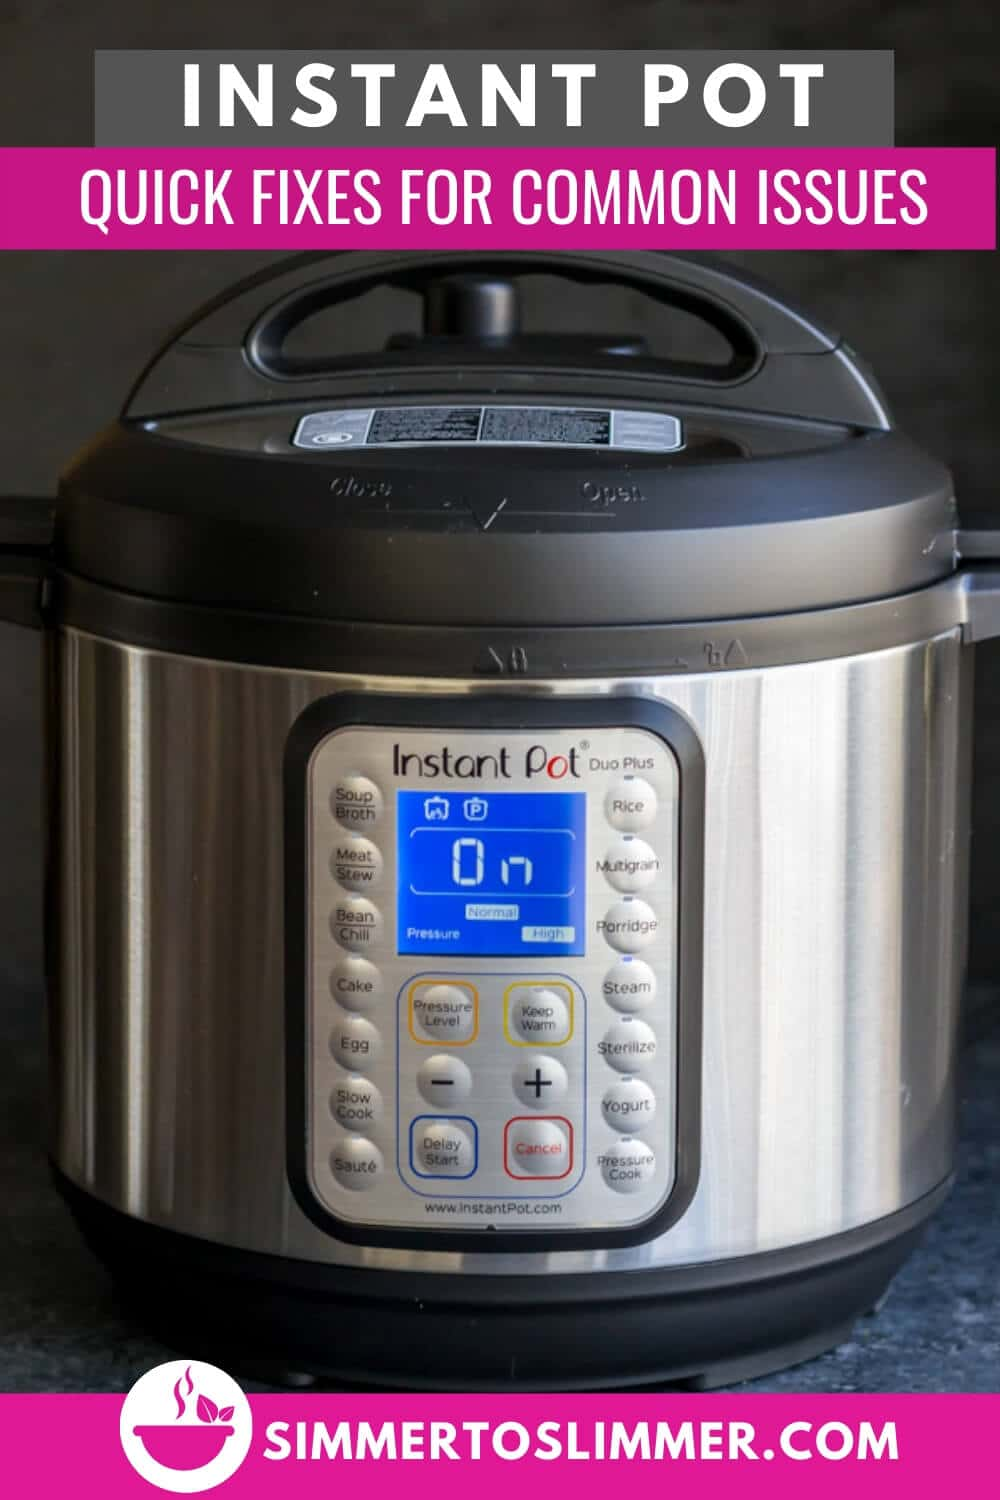 Instant Pot Issues Quick Fixes For Common Problems Simmer To Slimmer